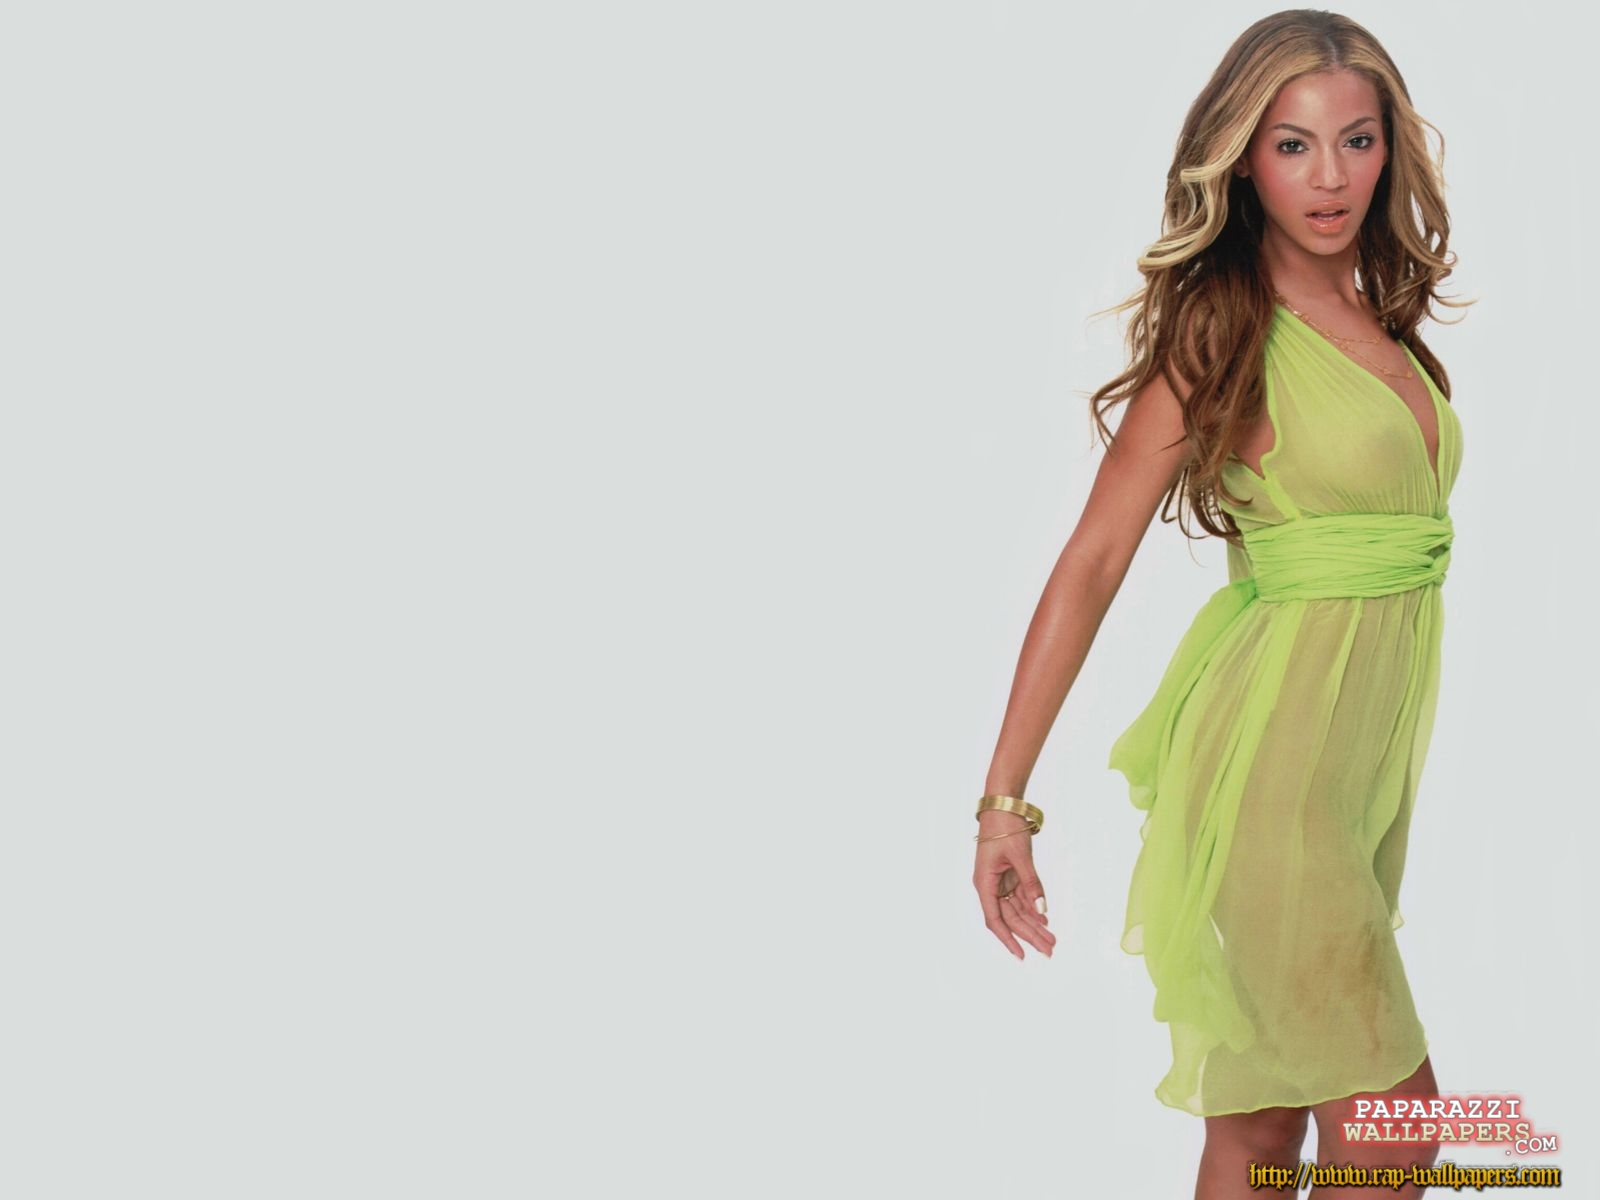 beyonce wallpapers 43